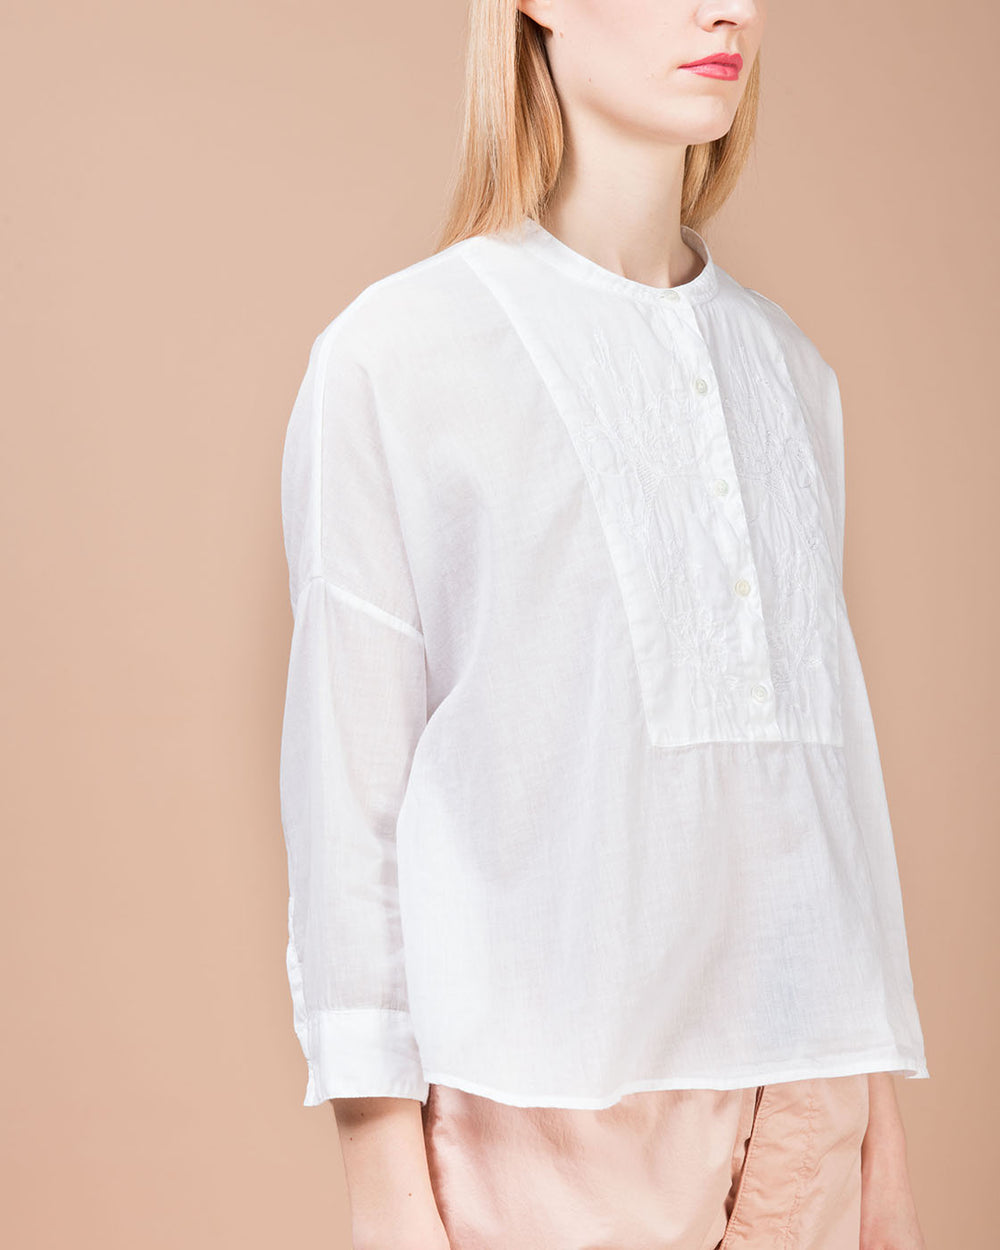 White Embroidery Band Collar Shirt